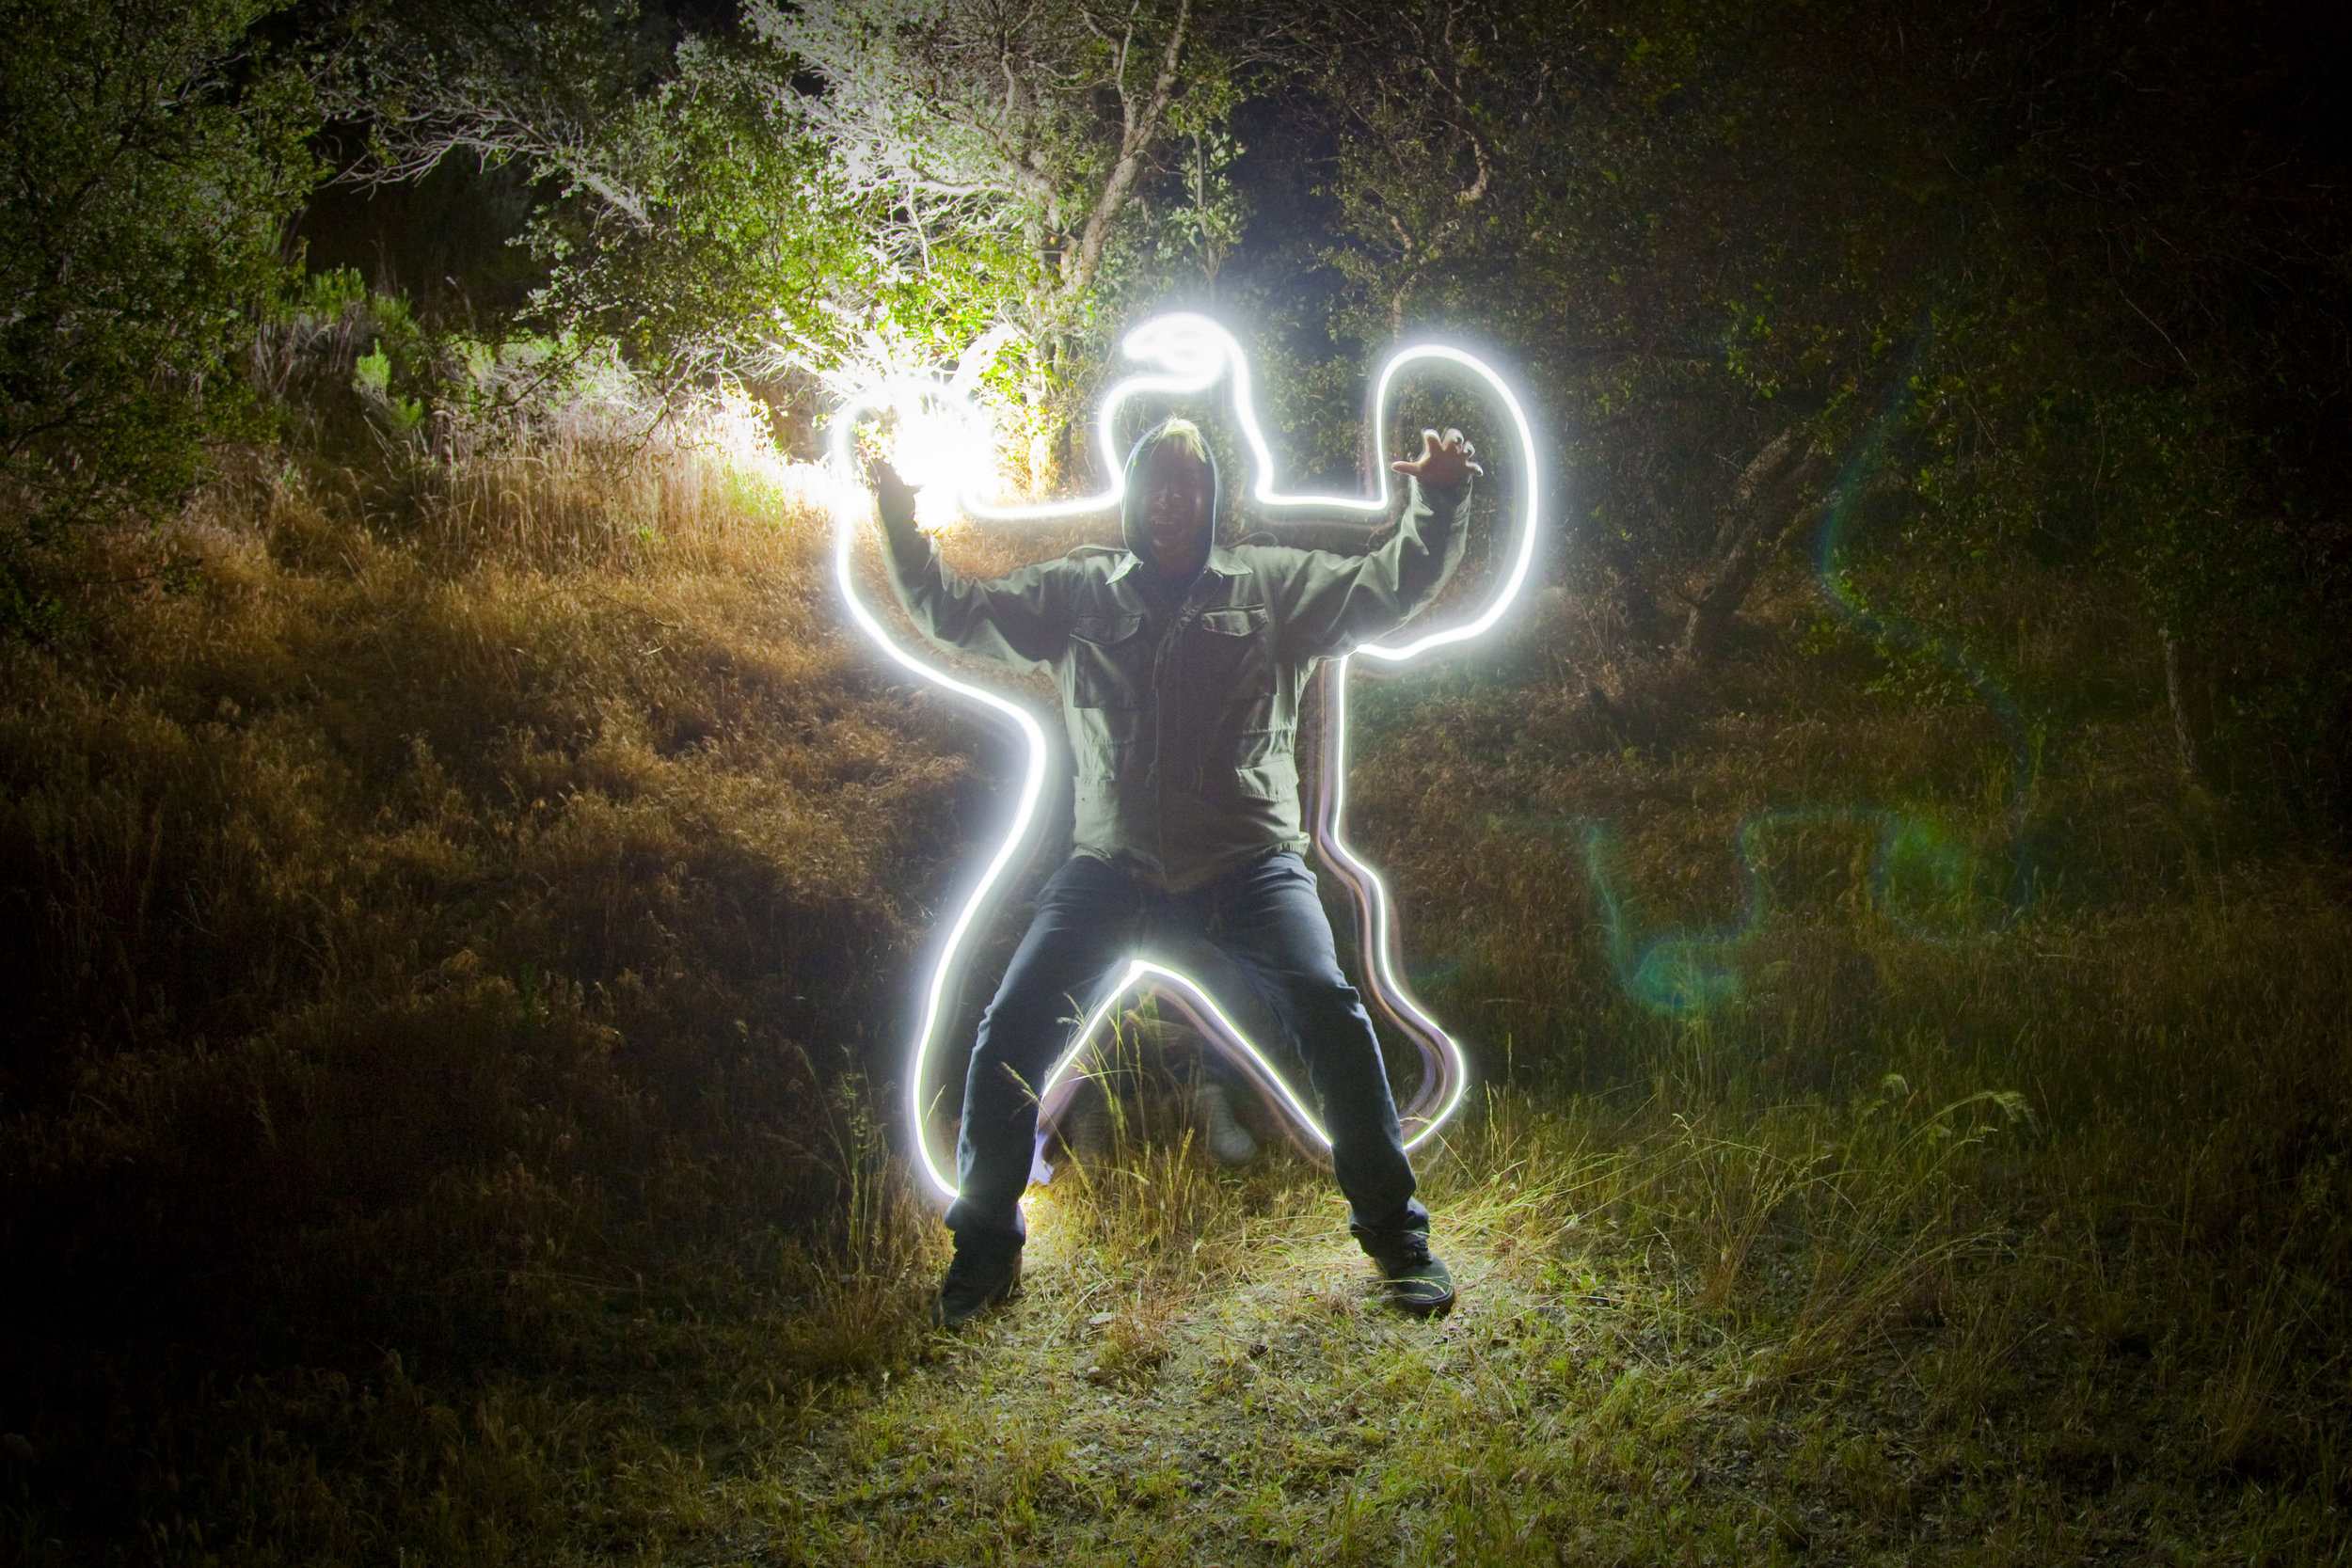 light_painting_081711_nonexc_003